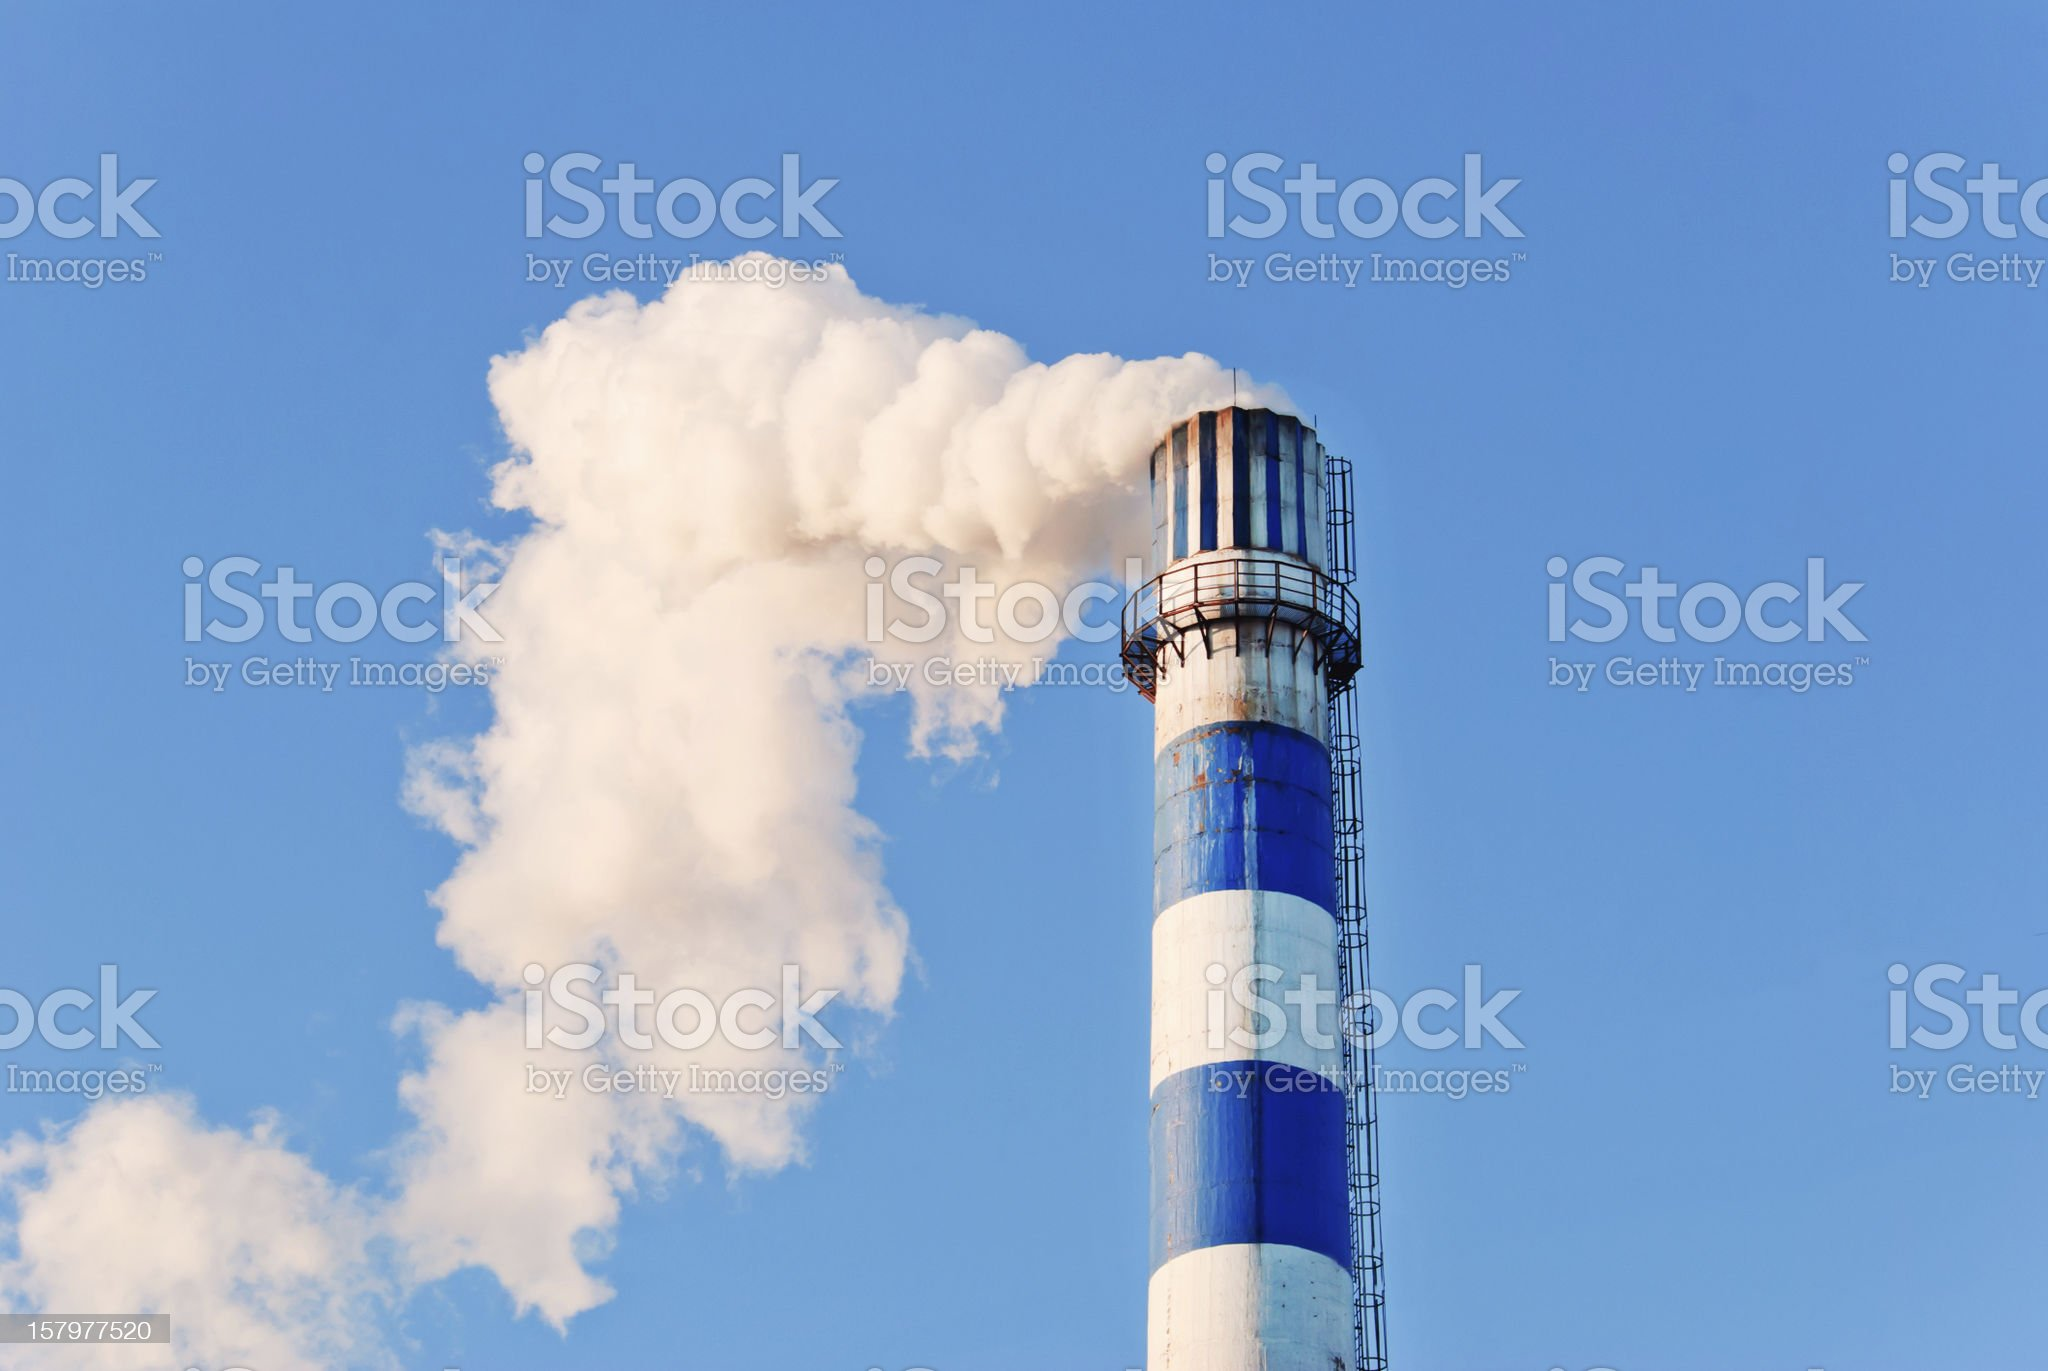 industrial smoke from chimney on blue sky royalty-free stock photo